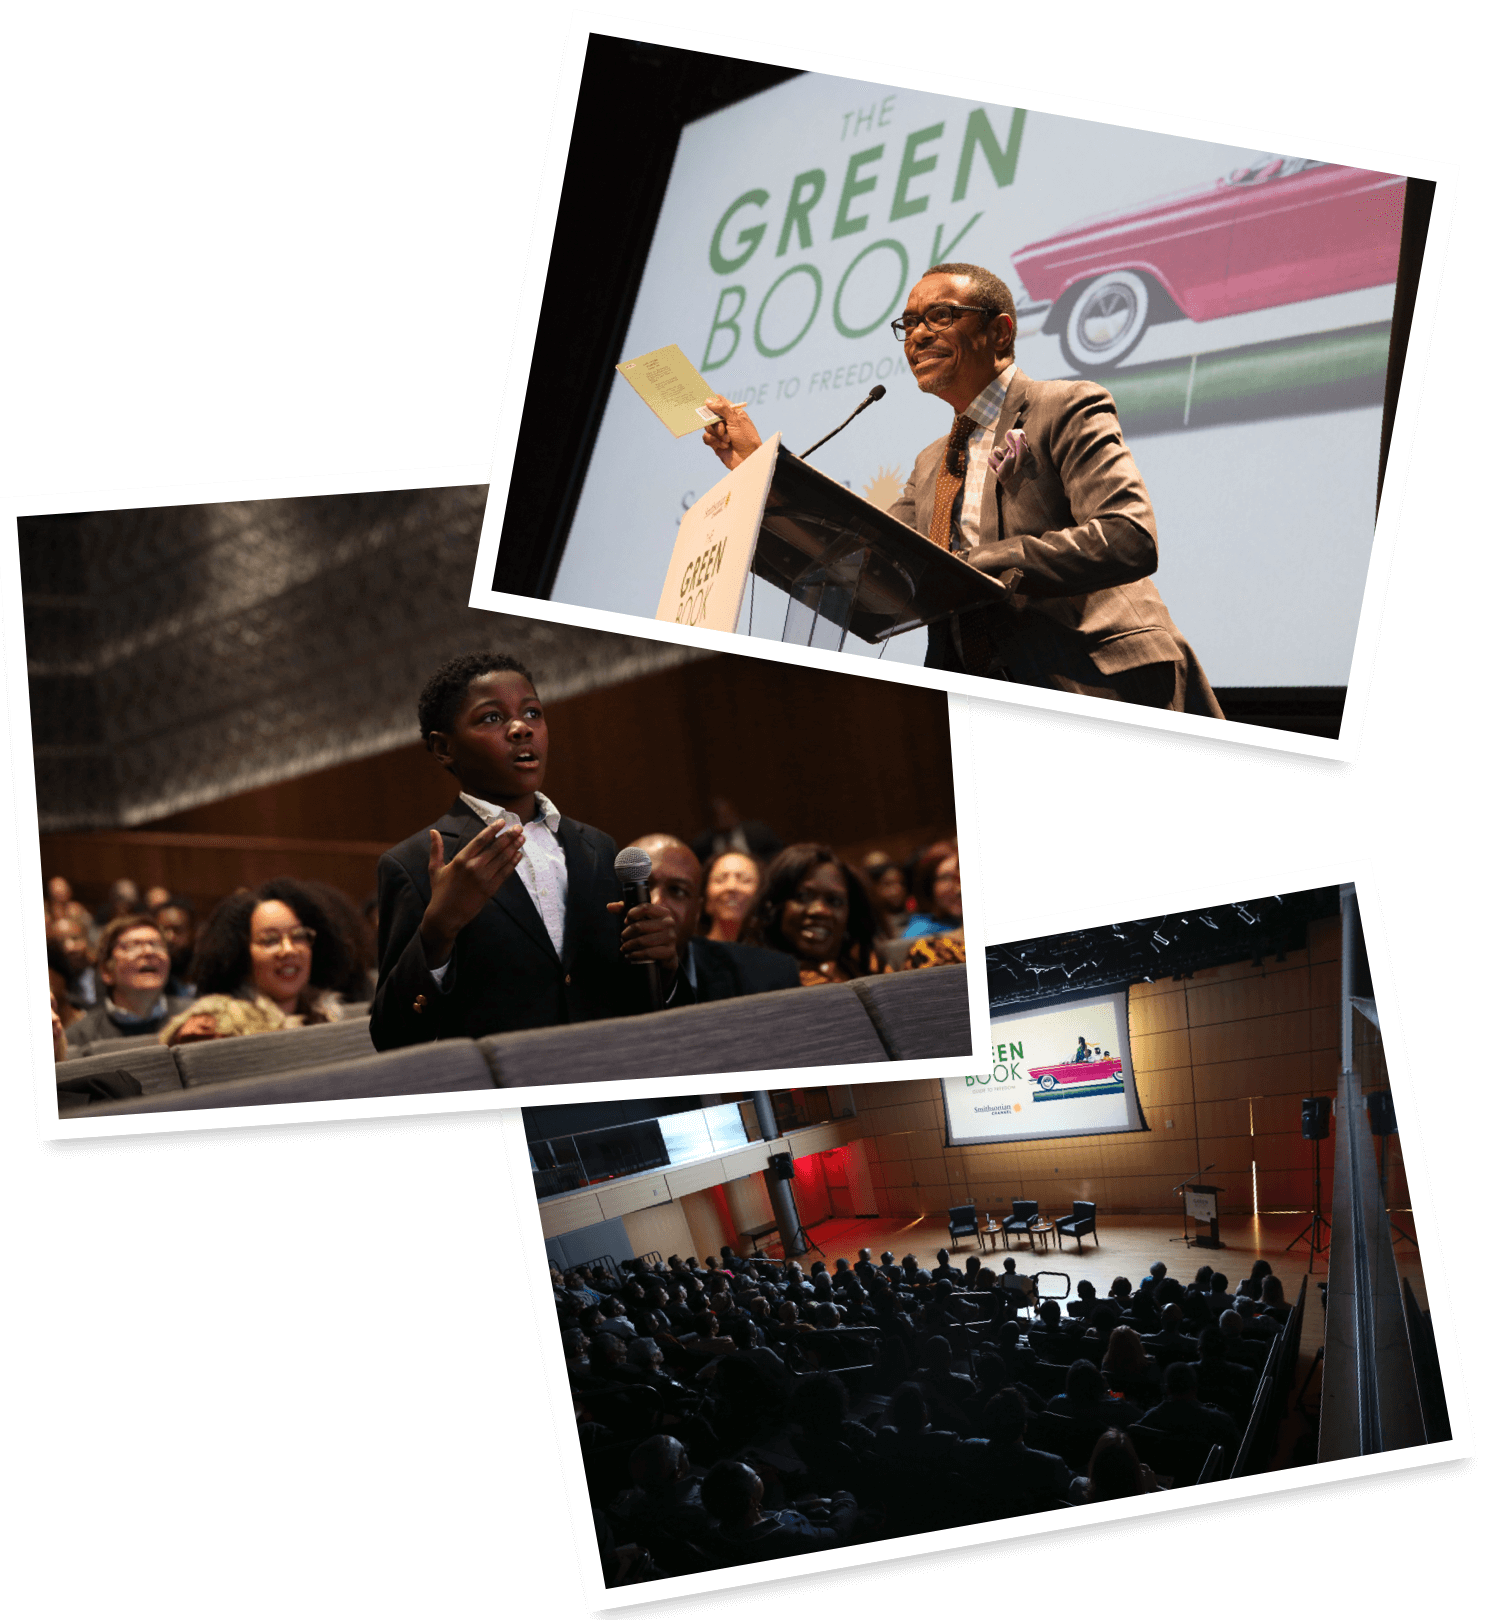 The Green Book photo collage